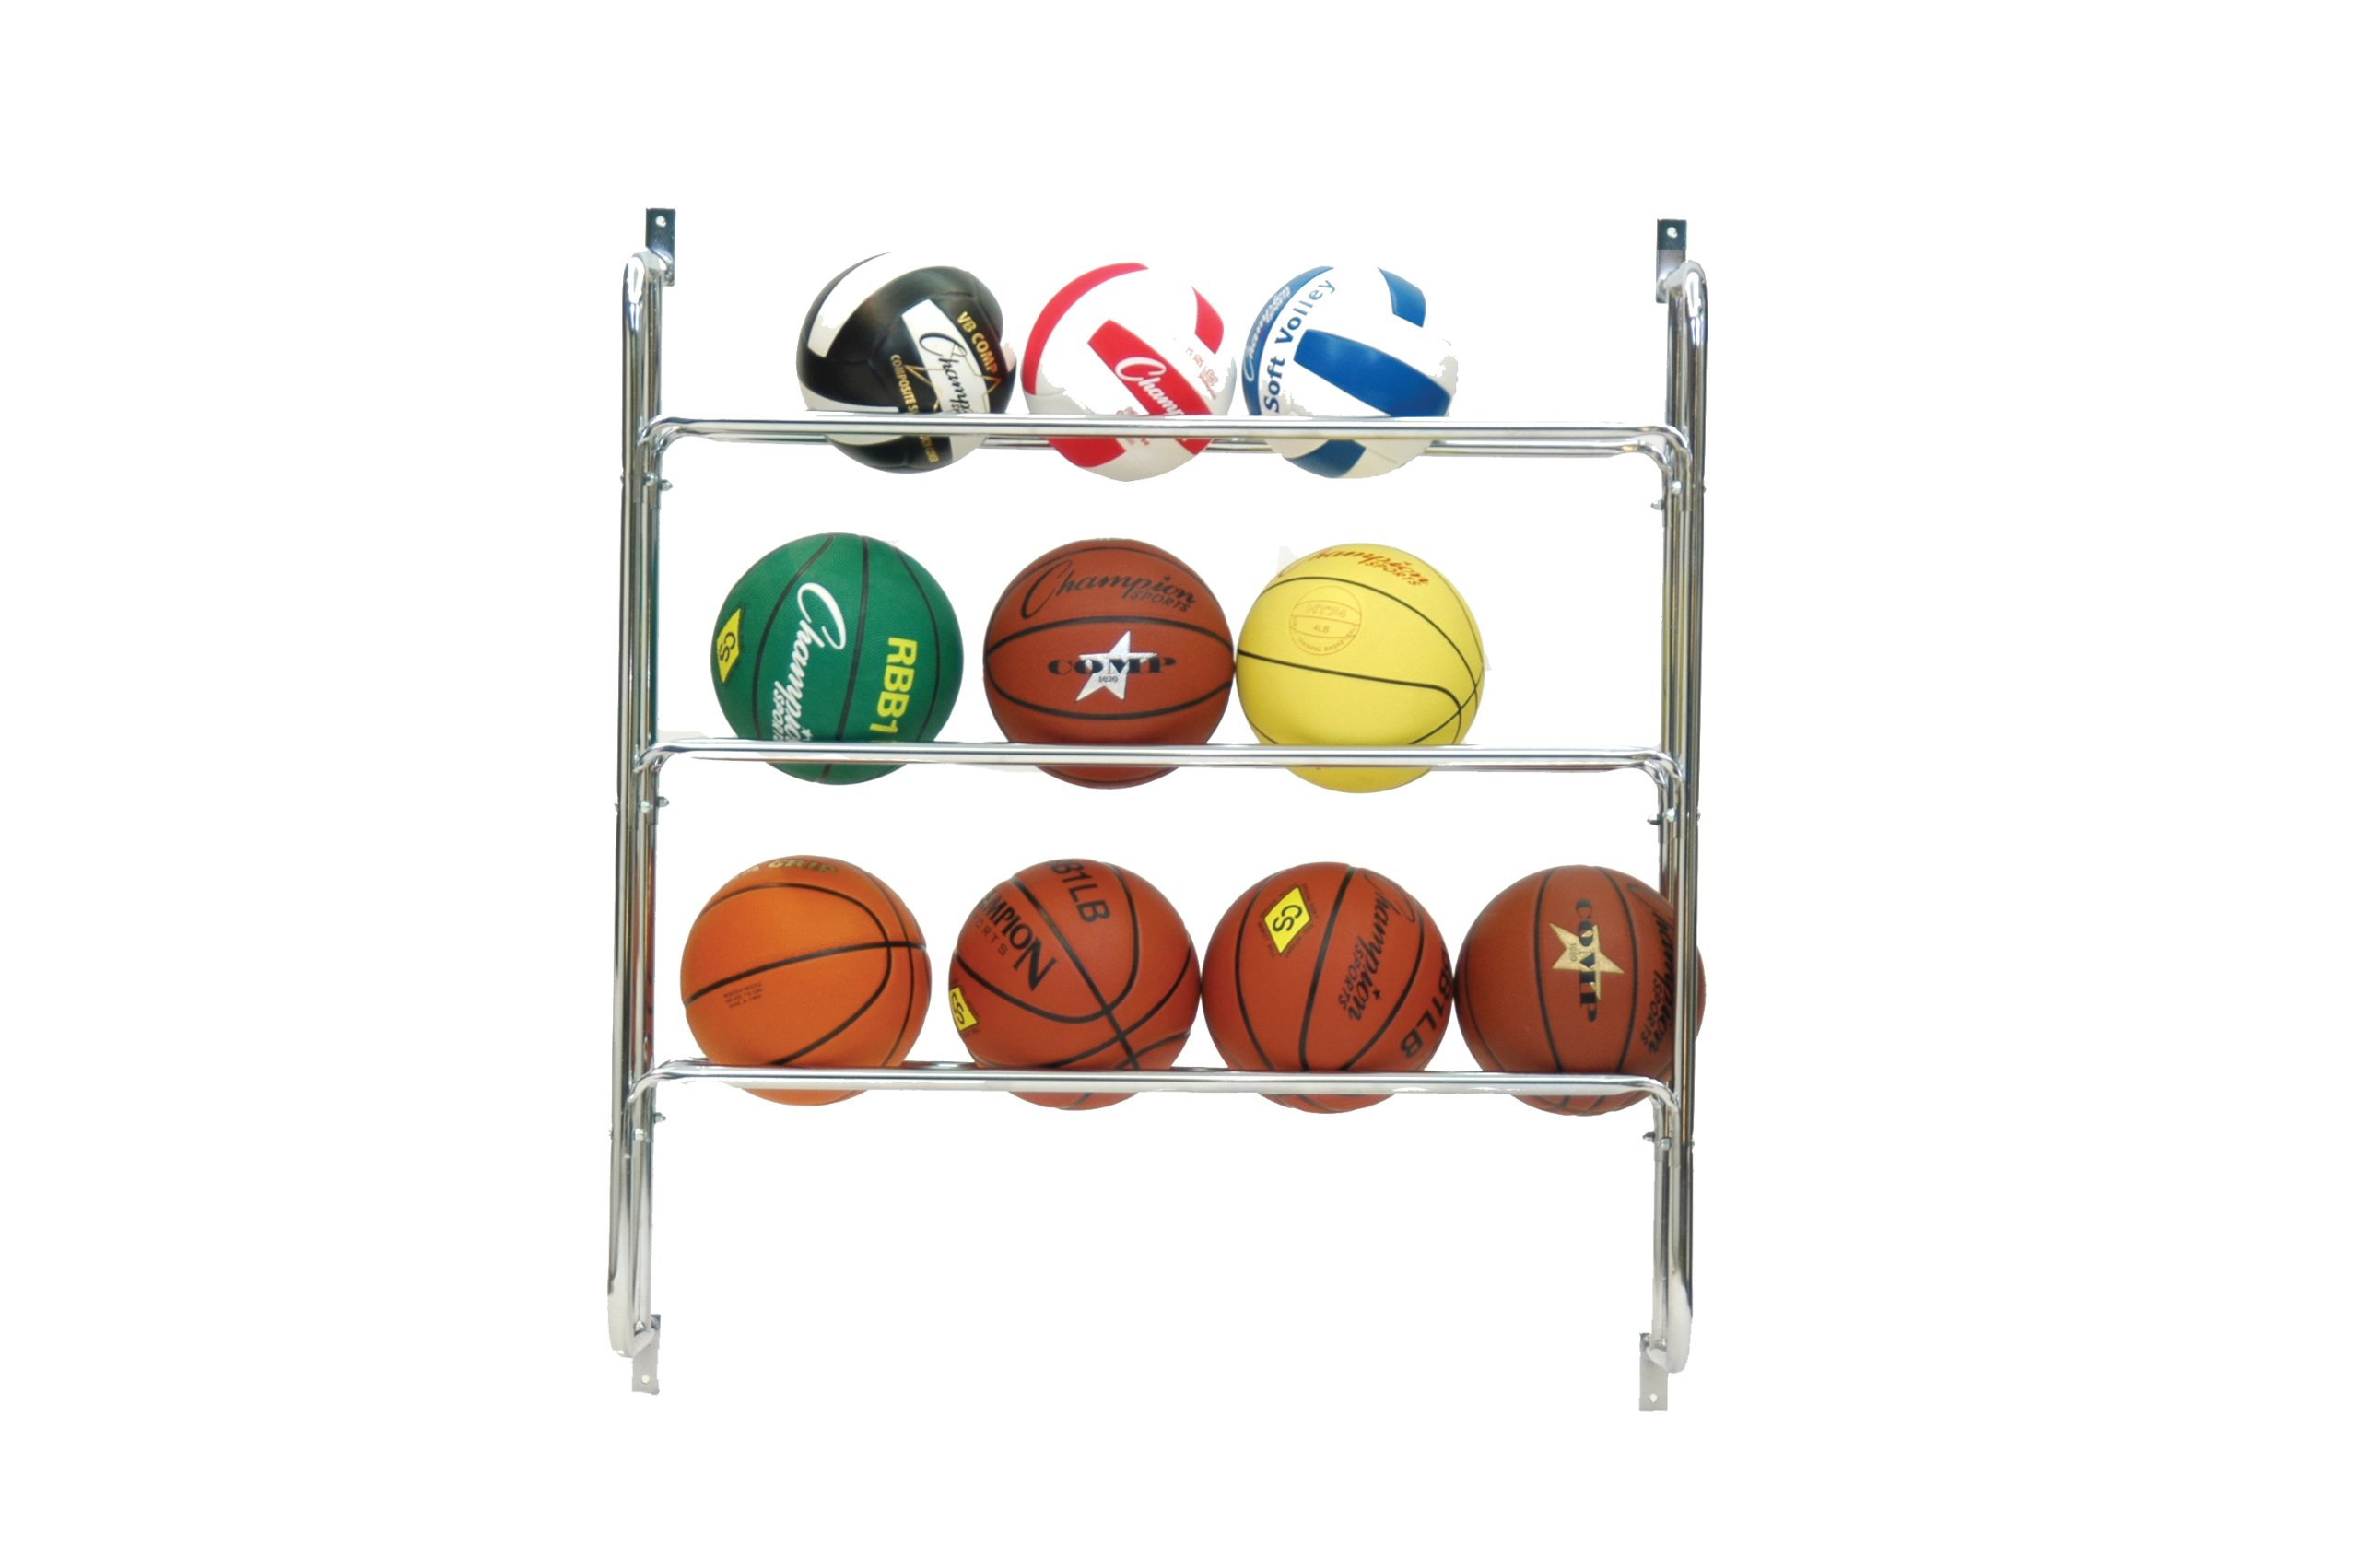 basketball hotel wicker shelf wall luxury storage rattan bathrooms black three stands bath baskets white rustic rack mounted coat with ideas enticing inspirational racks styl and concept towel as bench basket precious small dw wire bathroom also iron style